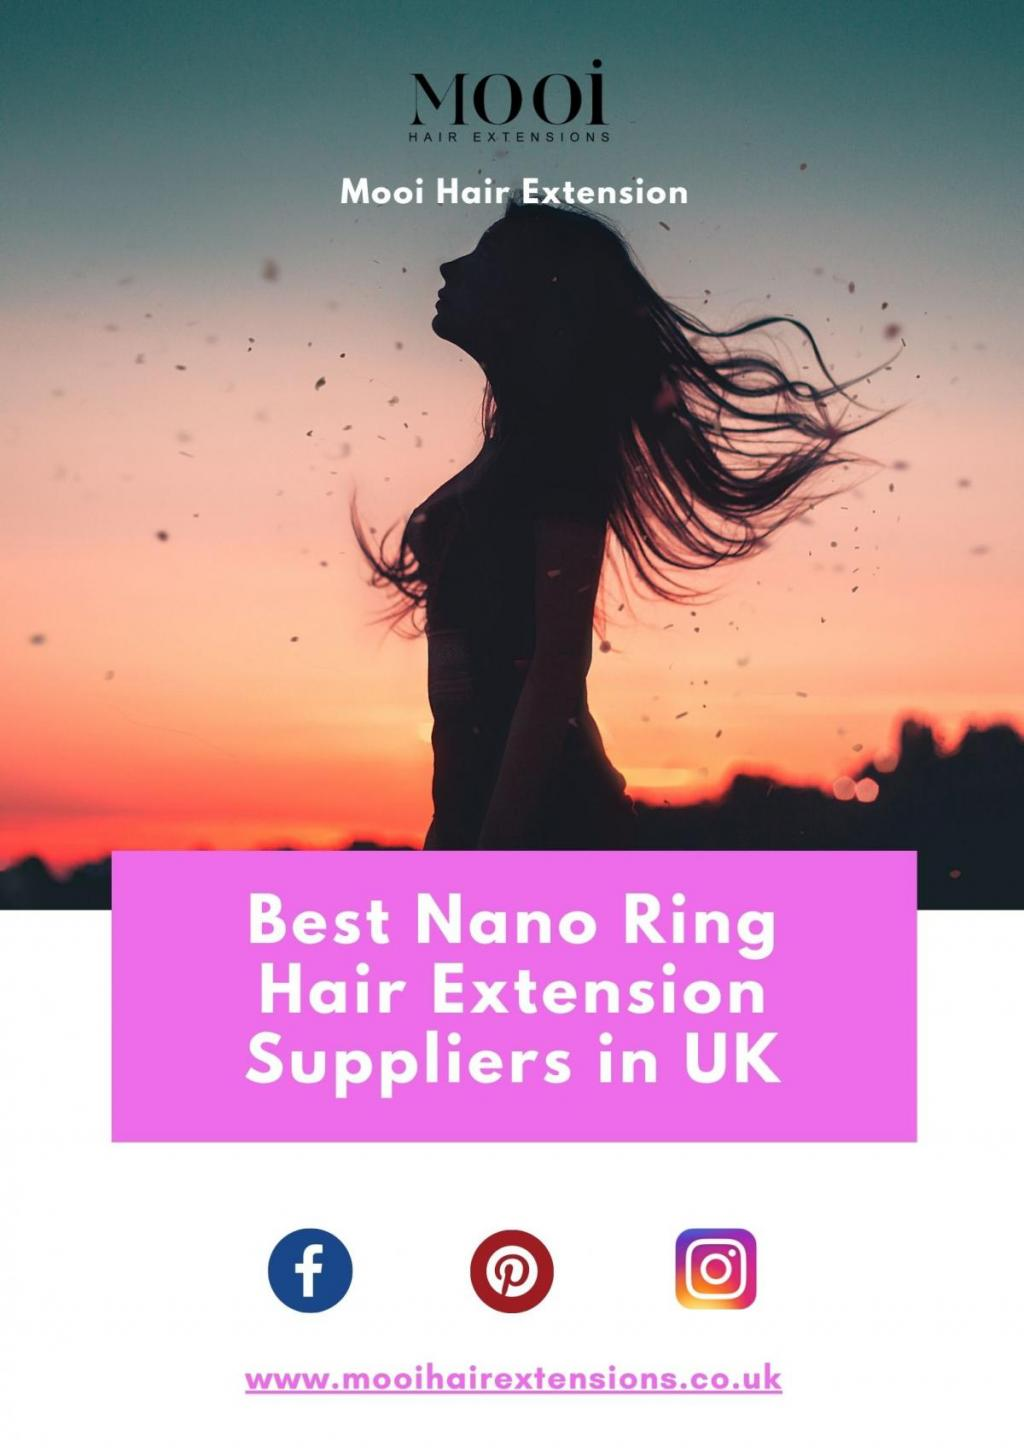 Best Nano Ring Hair Extension Suppliers in UK